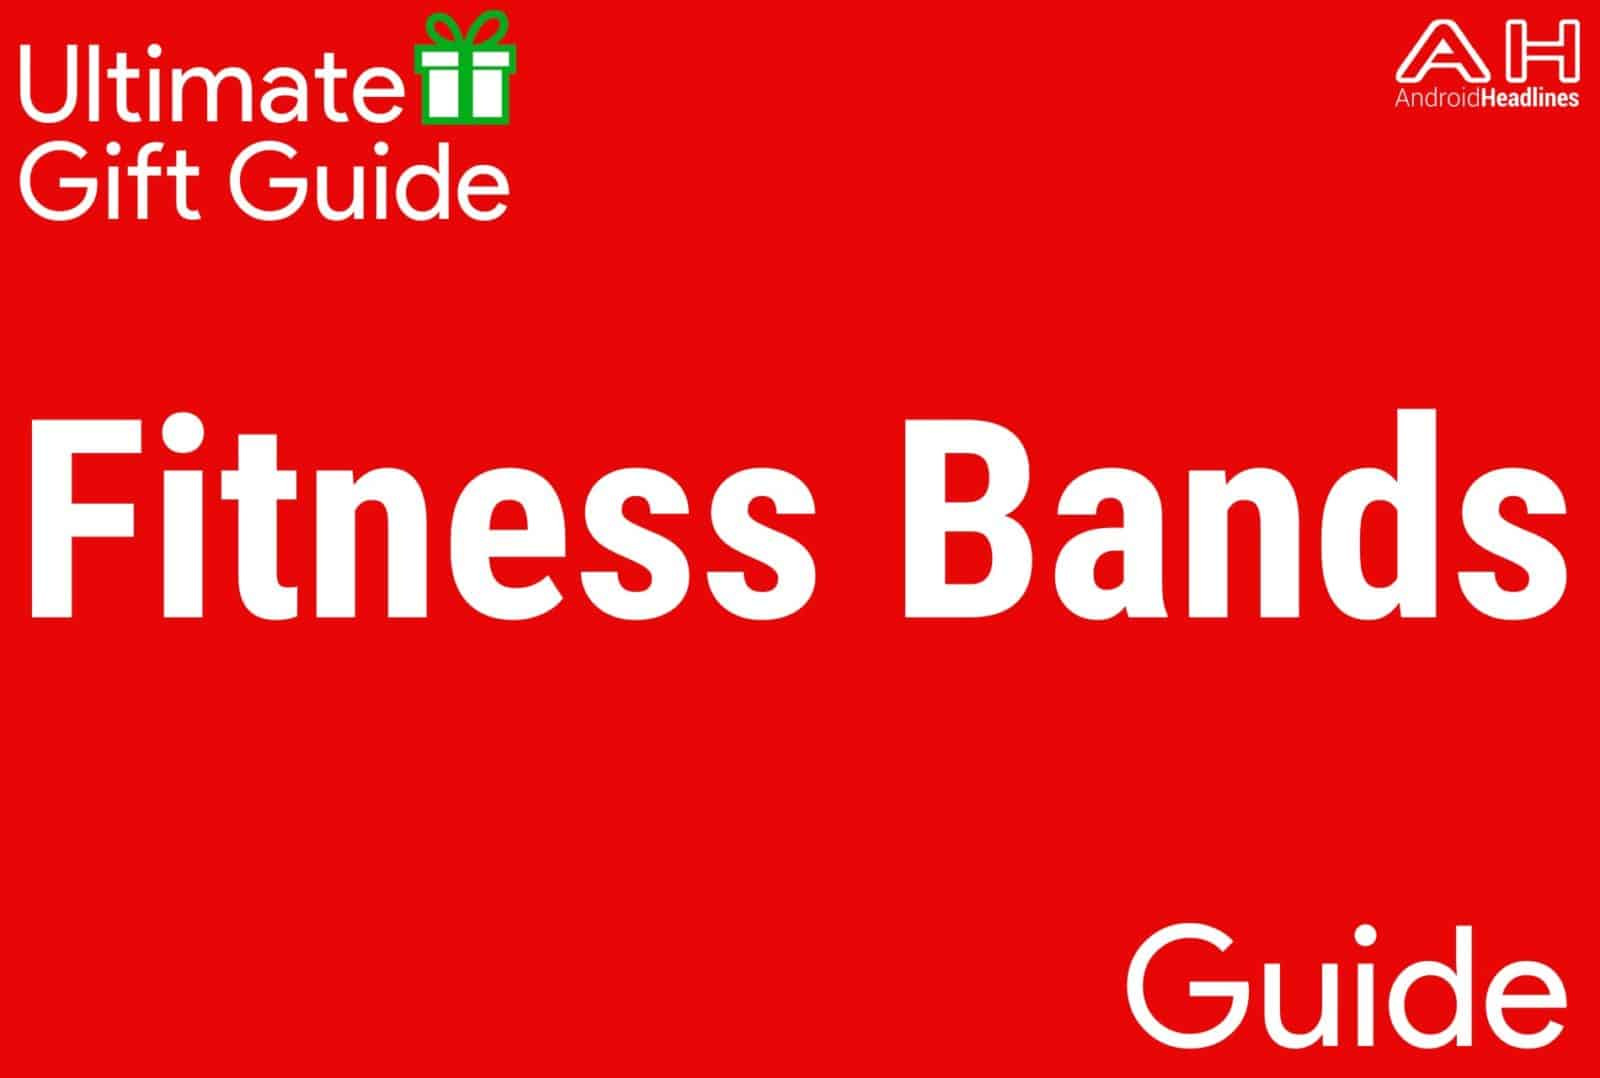 Fitness Bands - Gift Guide 2015